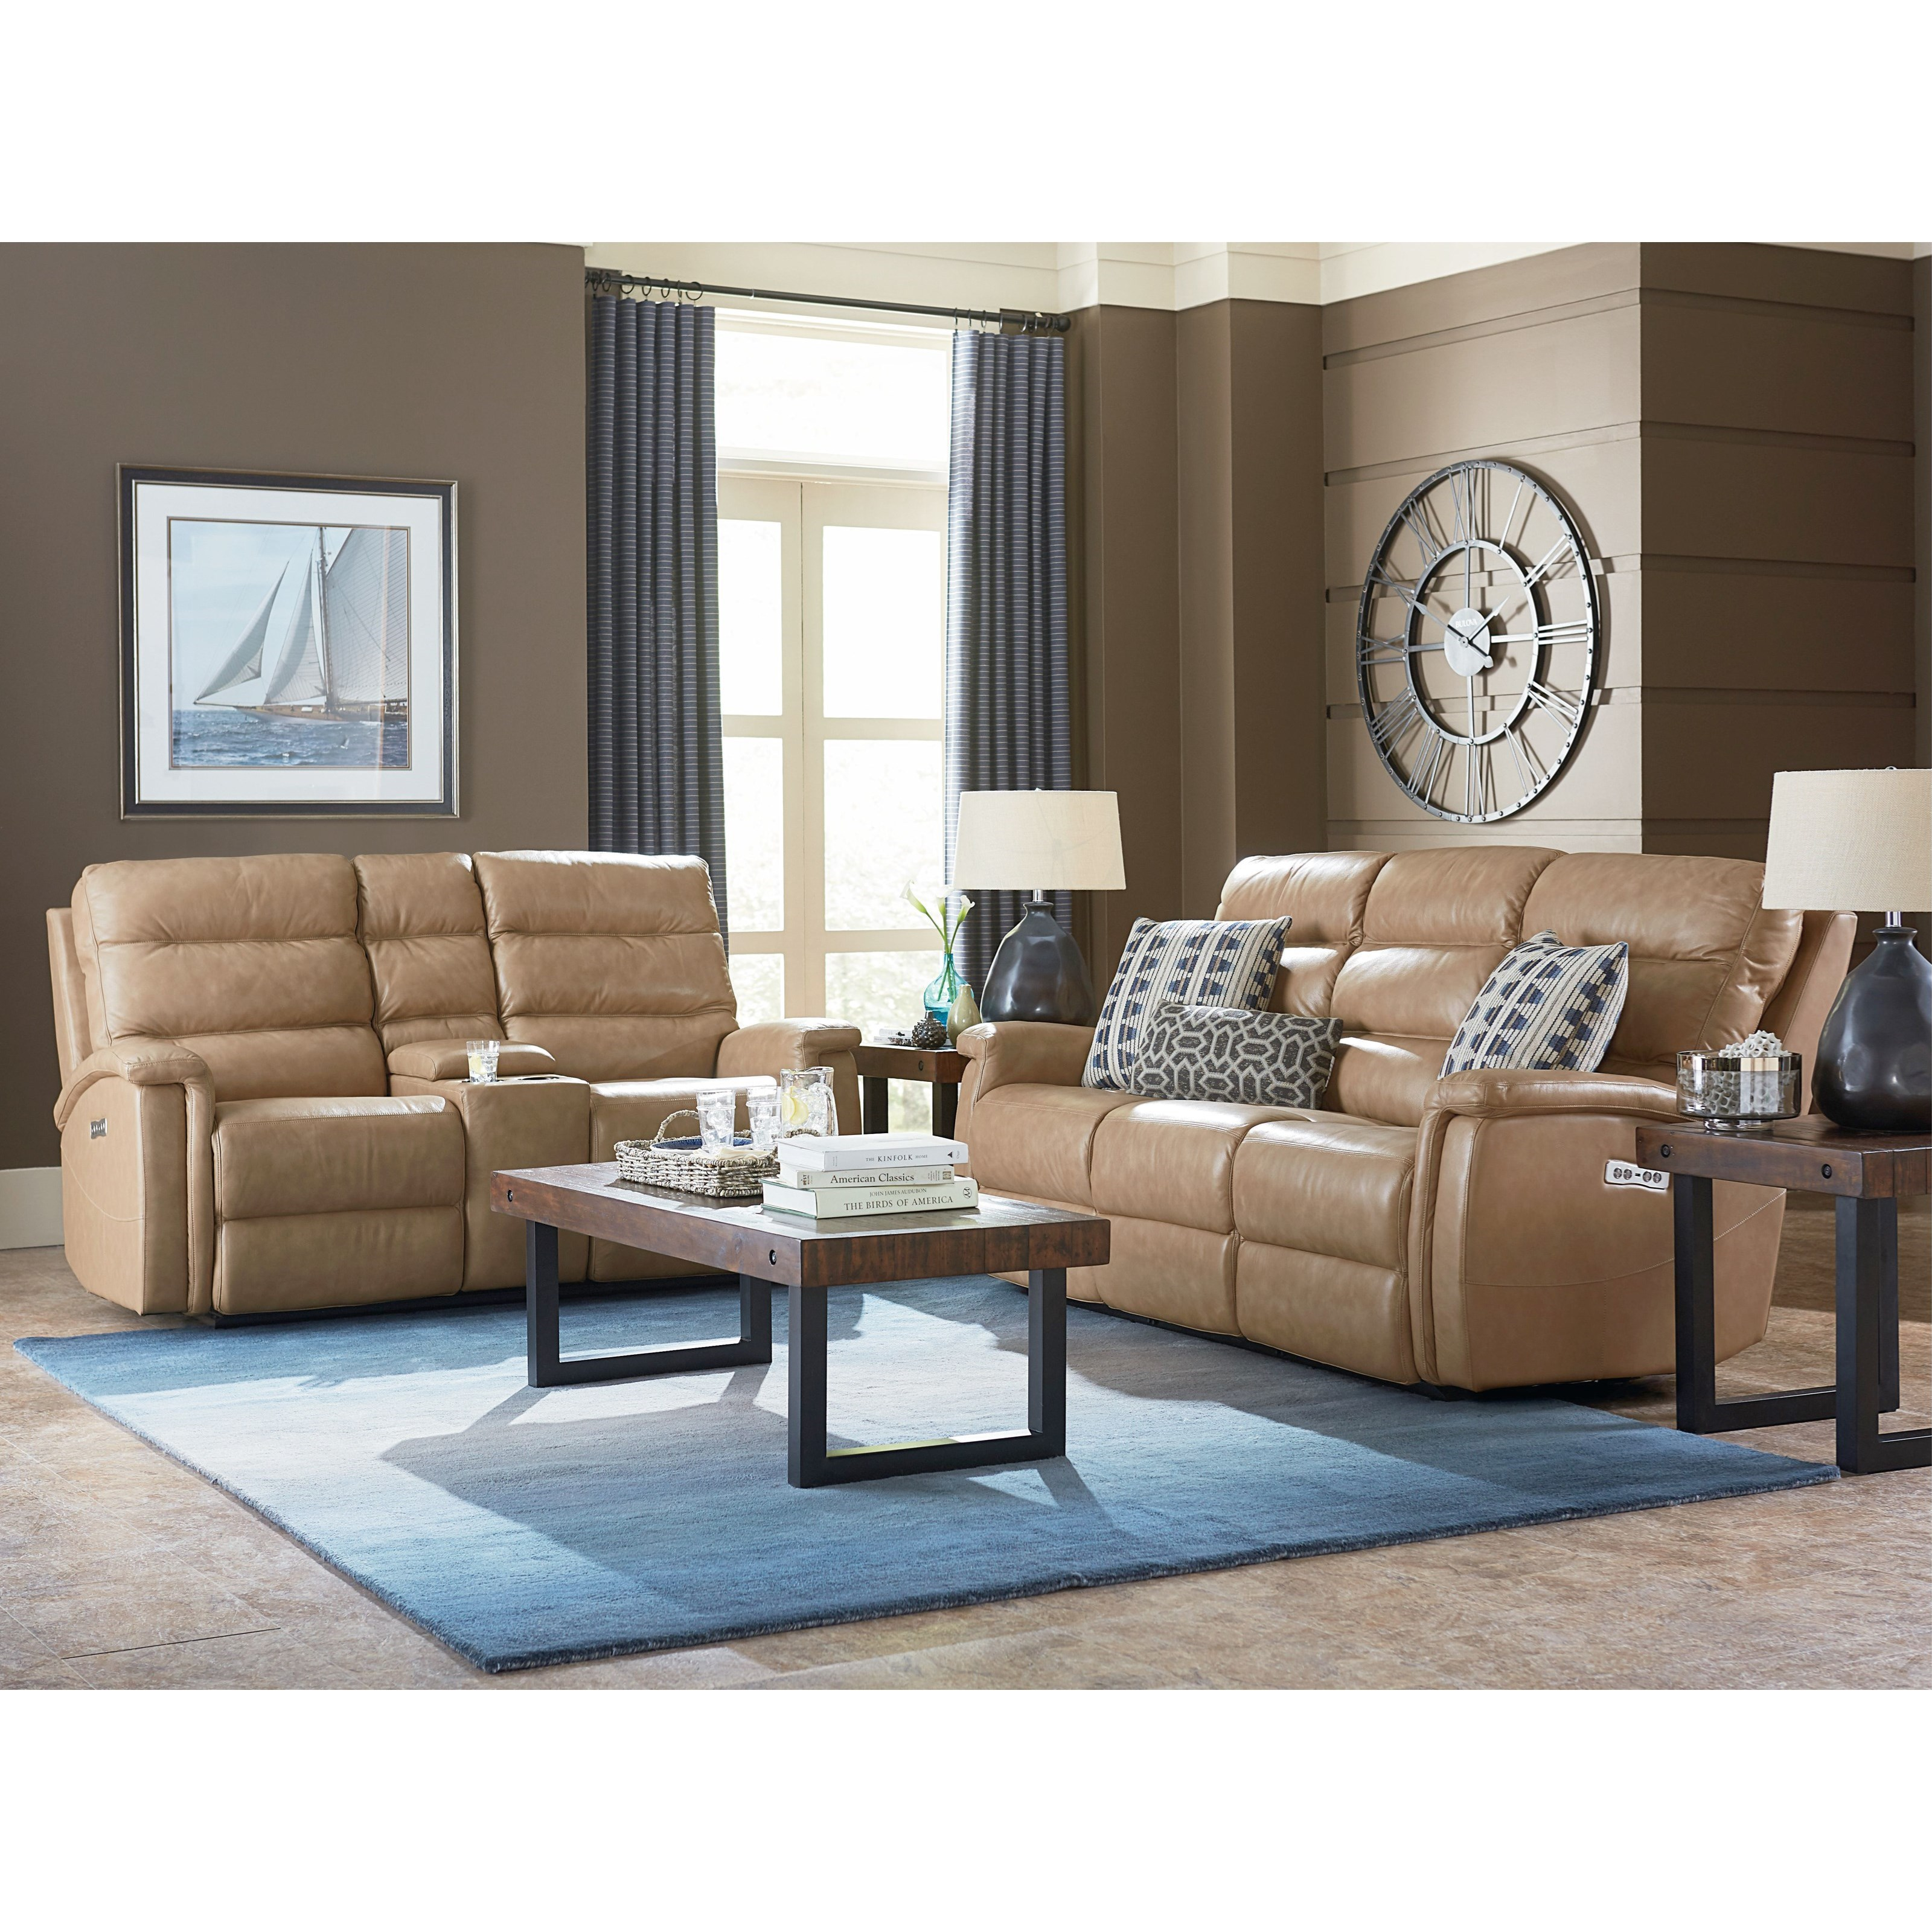 Regency - Club Level Reclining Living Room Group by Bassett at Williams & Kay